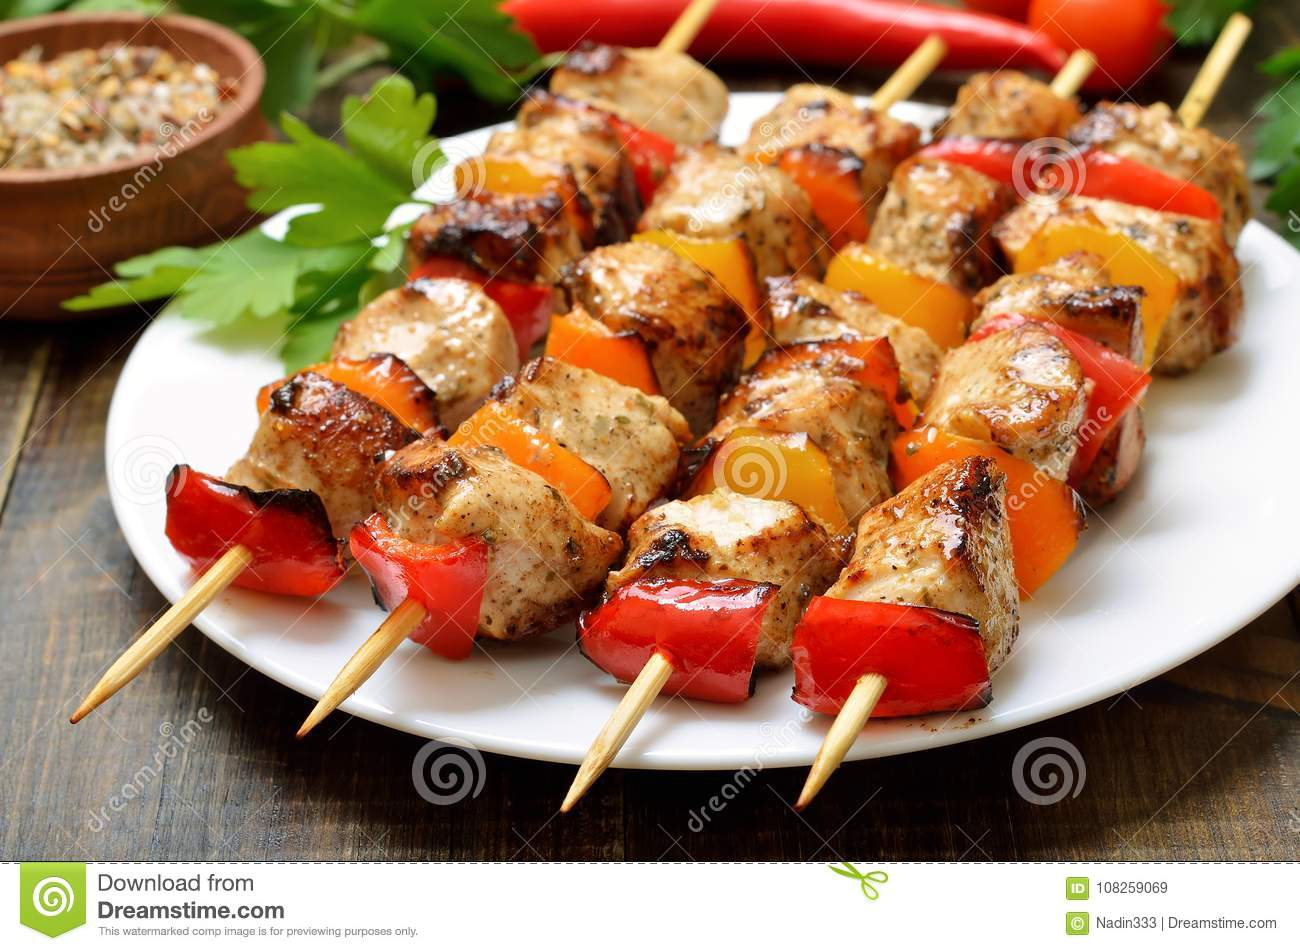 48 486 Chicken Kebab Photos Free Royalty Free Stock Photos From Dreamstime